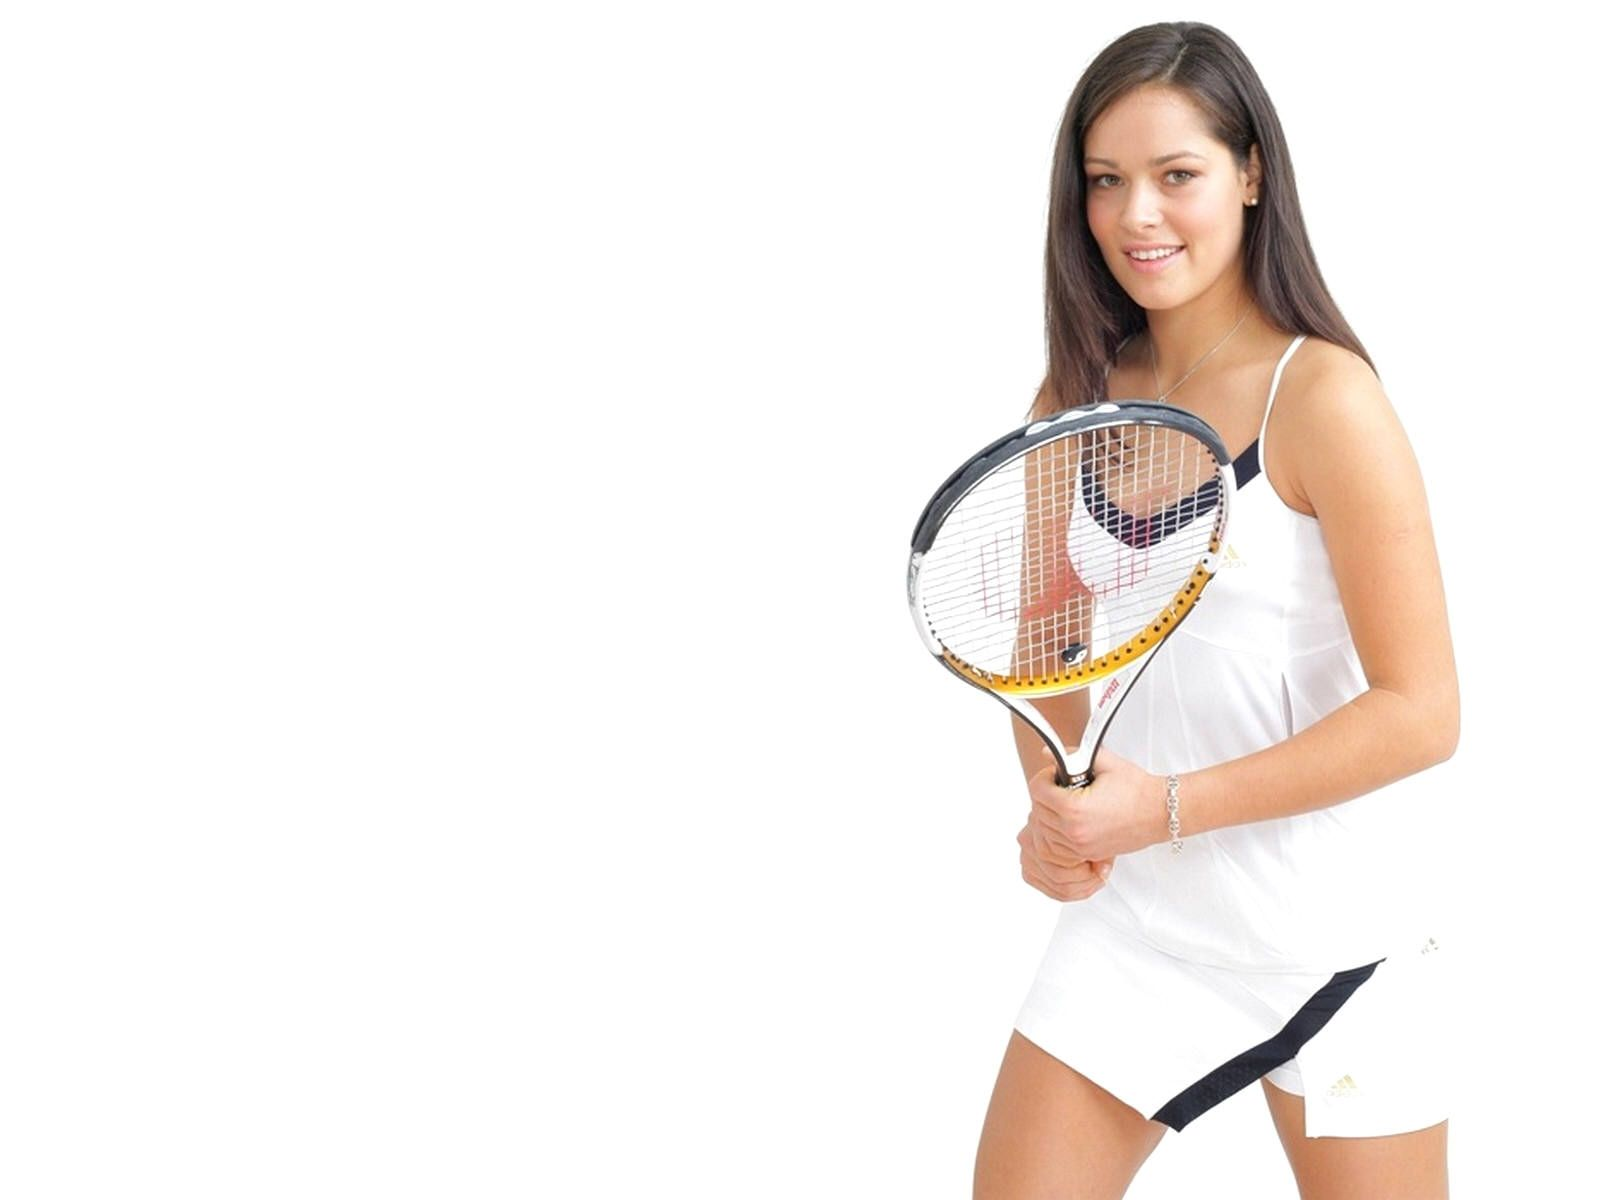 Ana Ivanovic Wallpapers (+25)